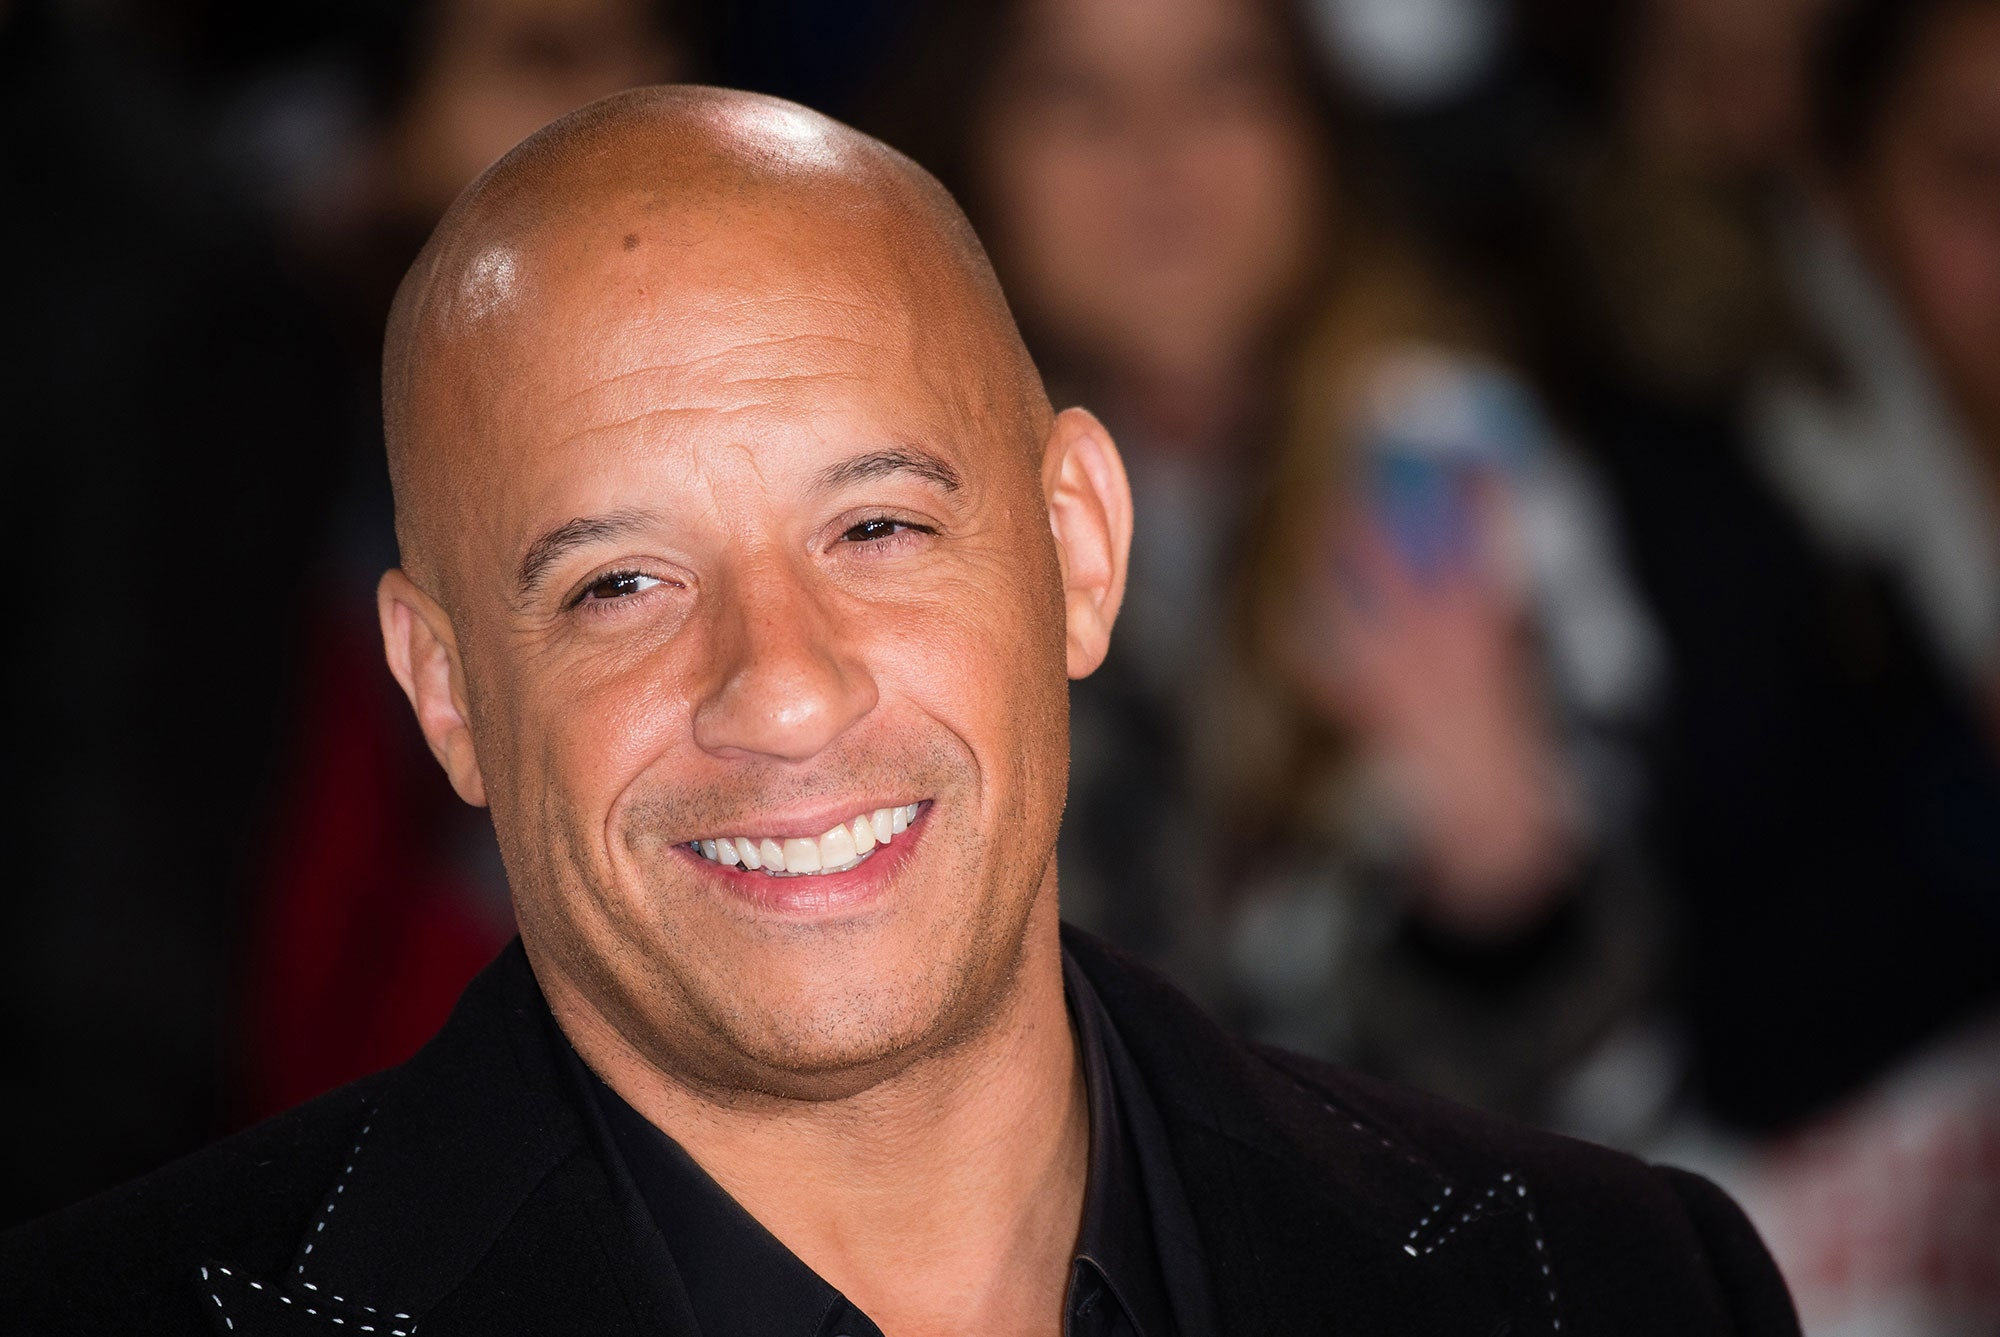 Vin Diesel Nude Shower Photoshoots & Shirtless In Movies